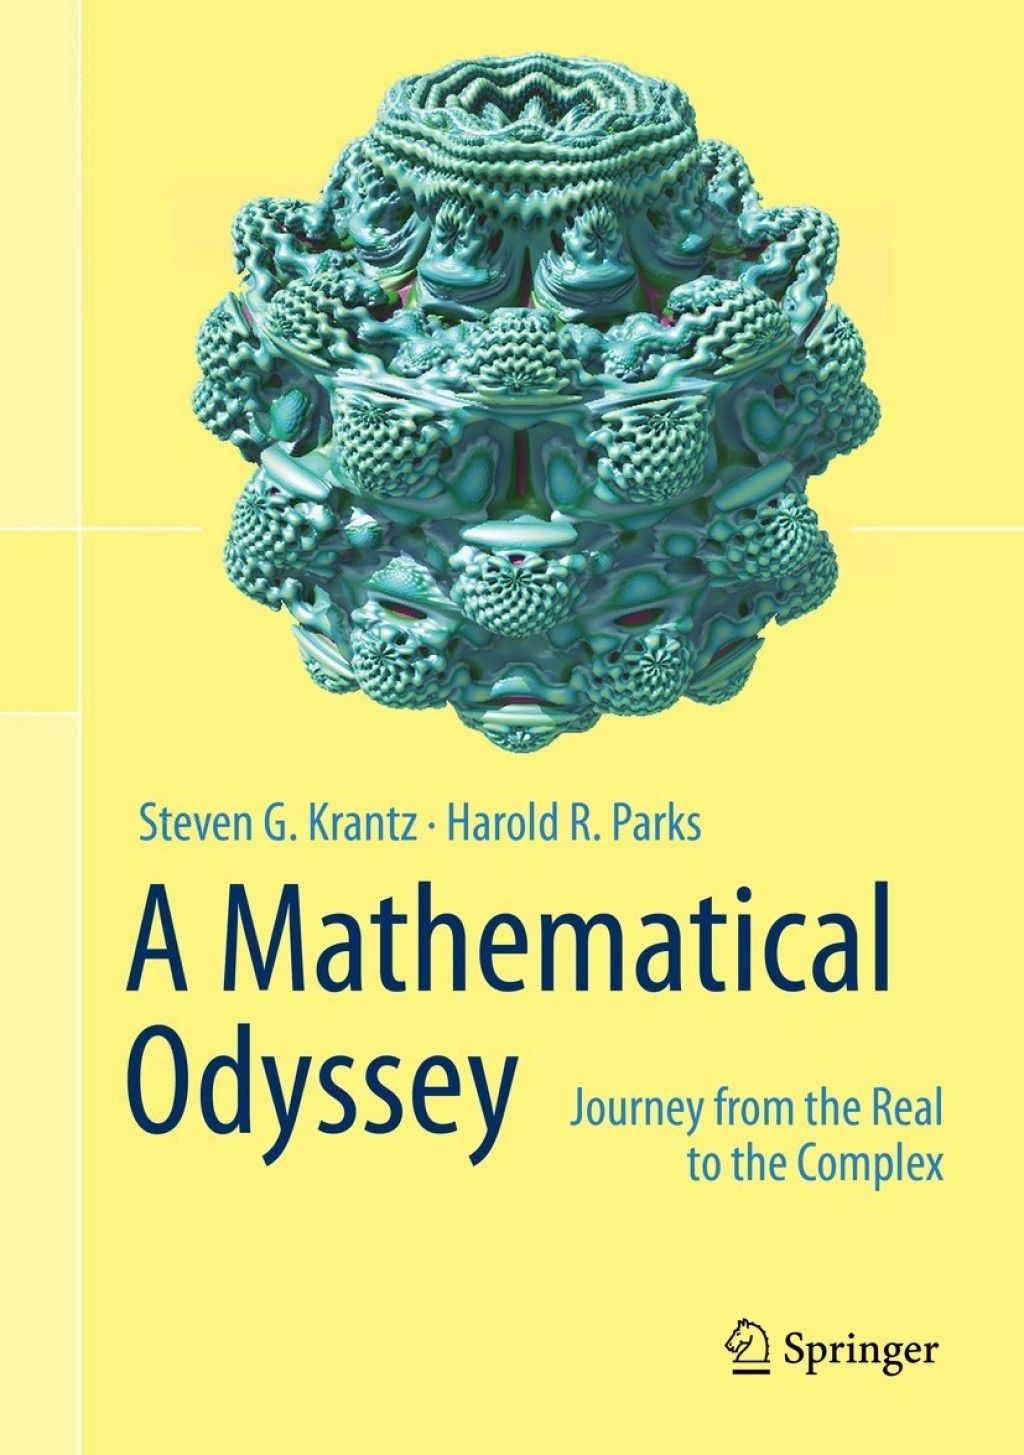 Pin By Mohamed Aead On Book Collection In 2020 Math Books Odyssey Caldwell University